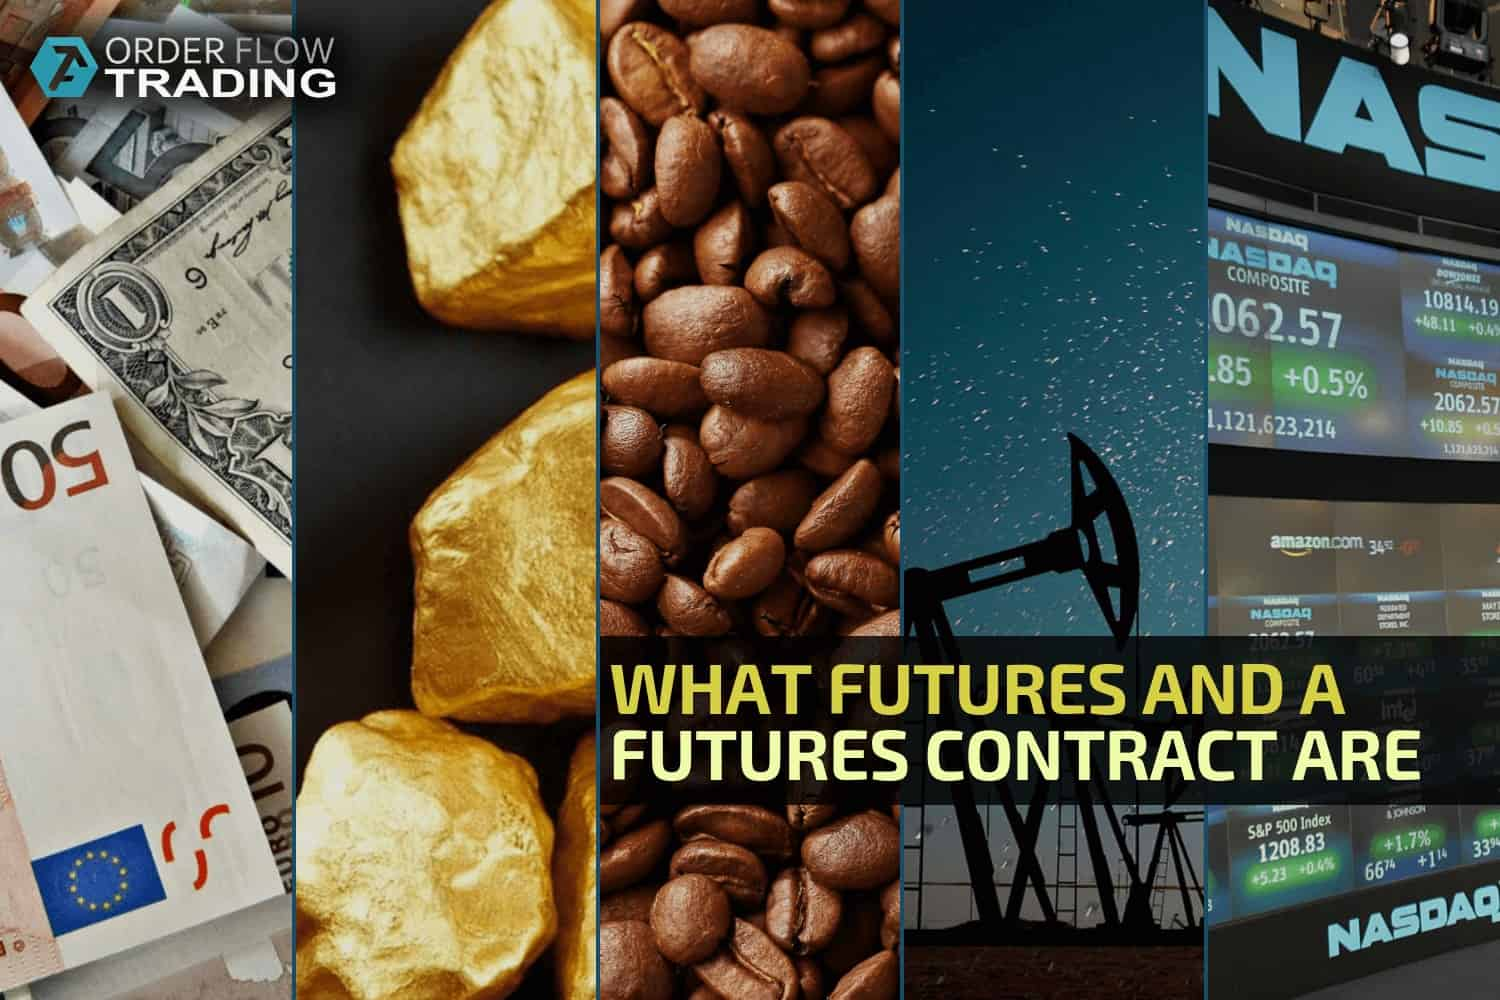 What futures and a futures contract are